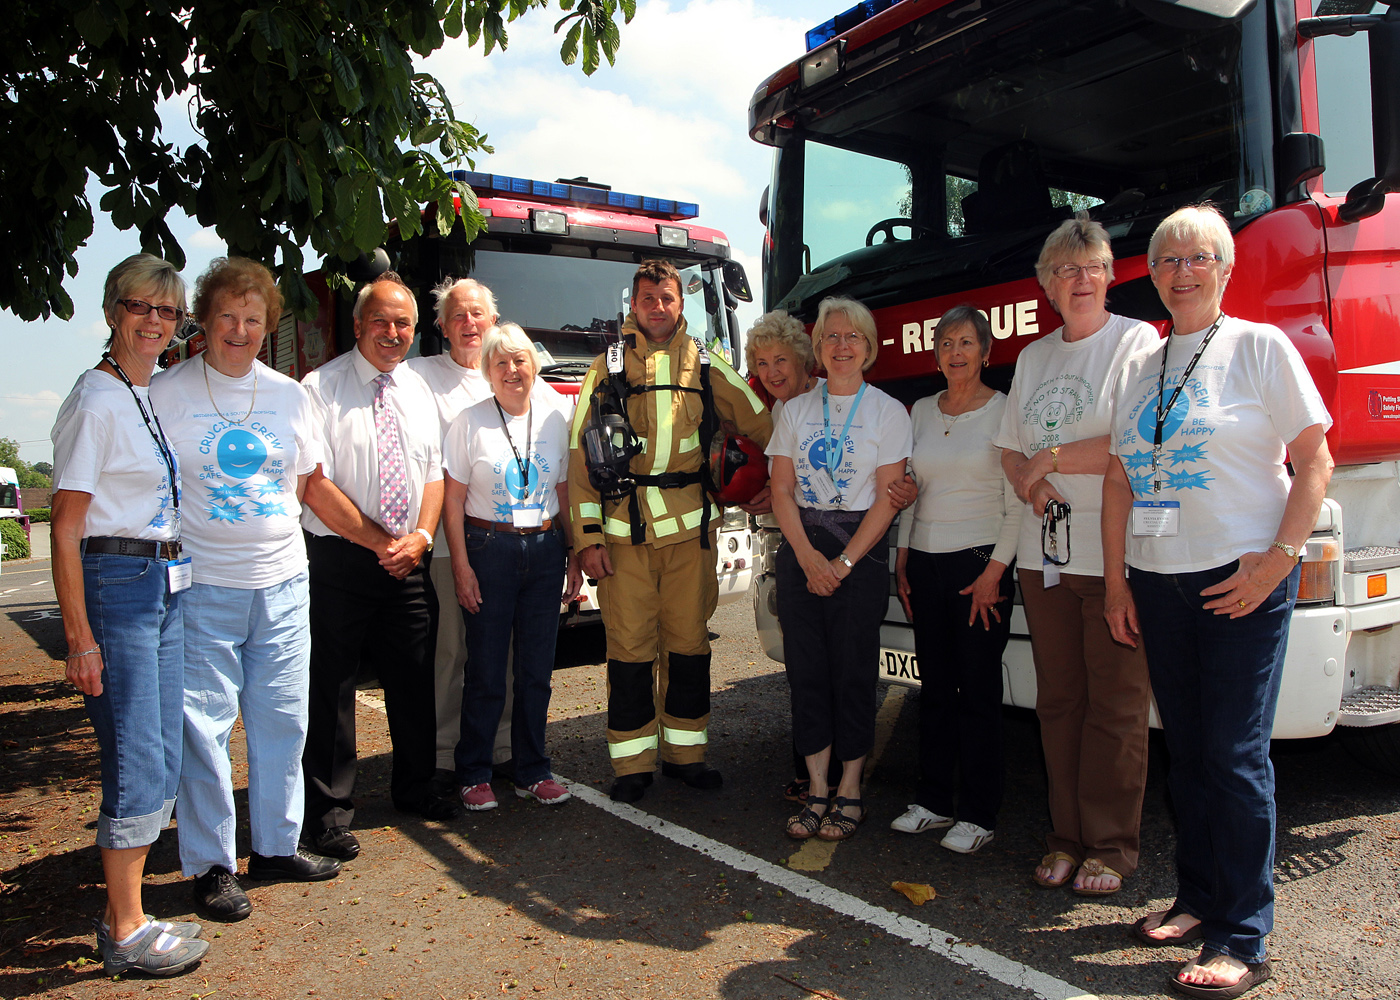 Fire Authority member with Crucial Crew volunteers in Shropshire